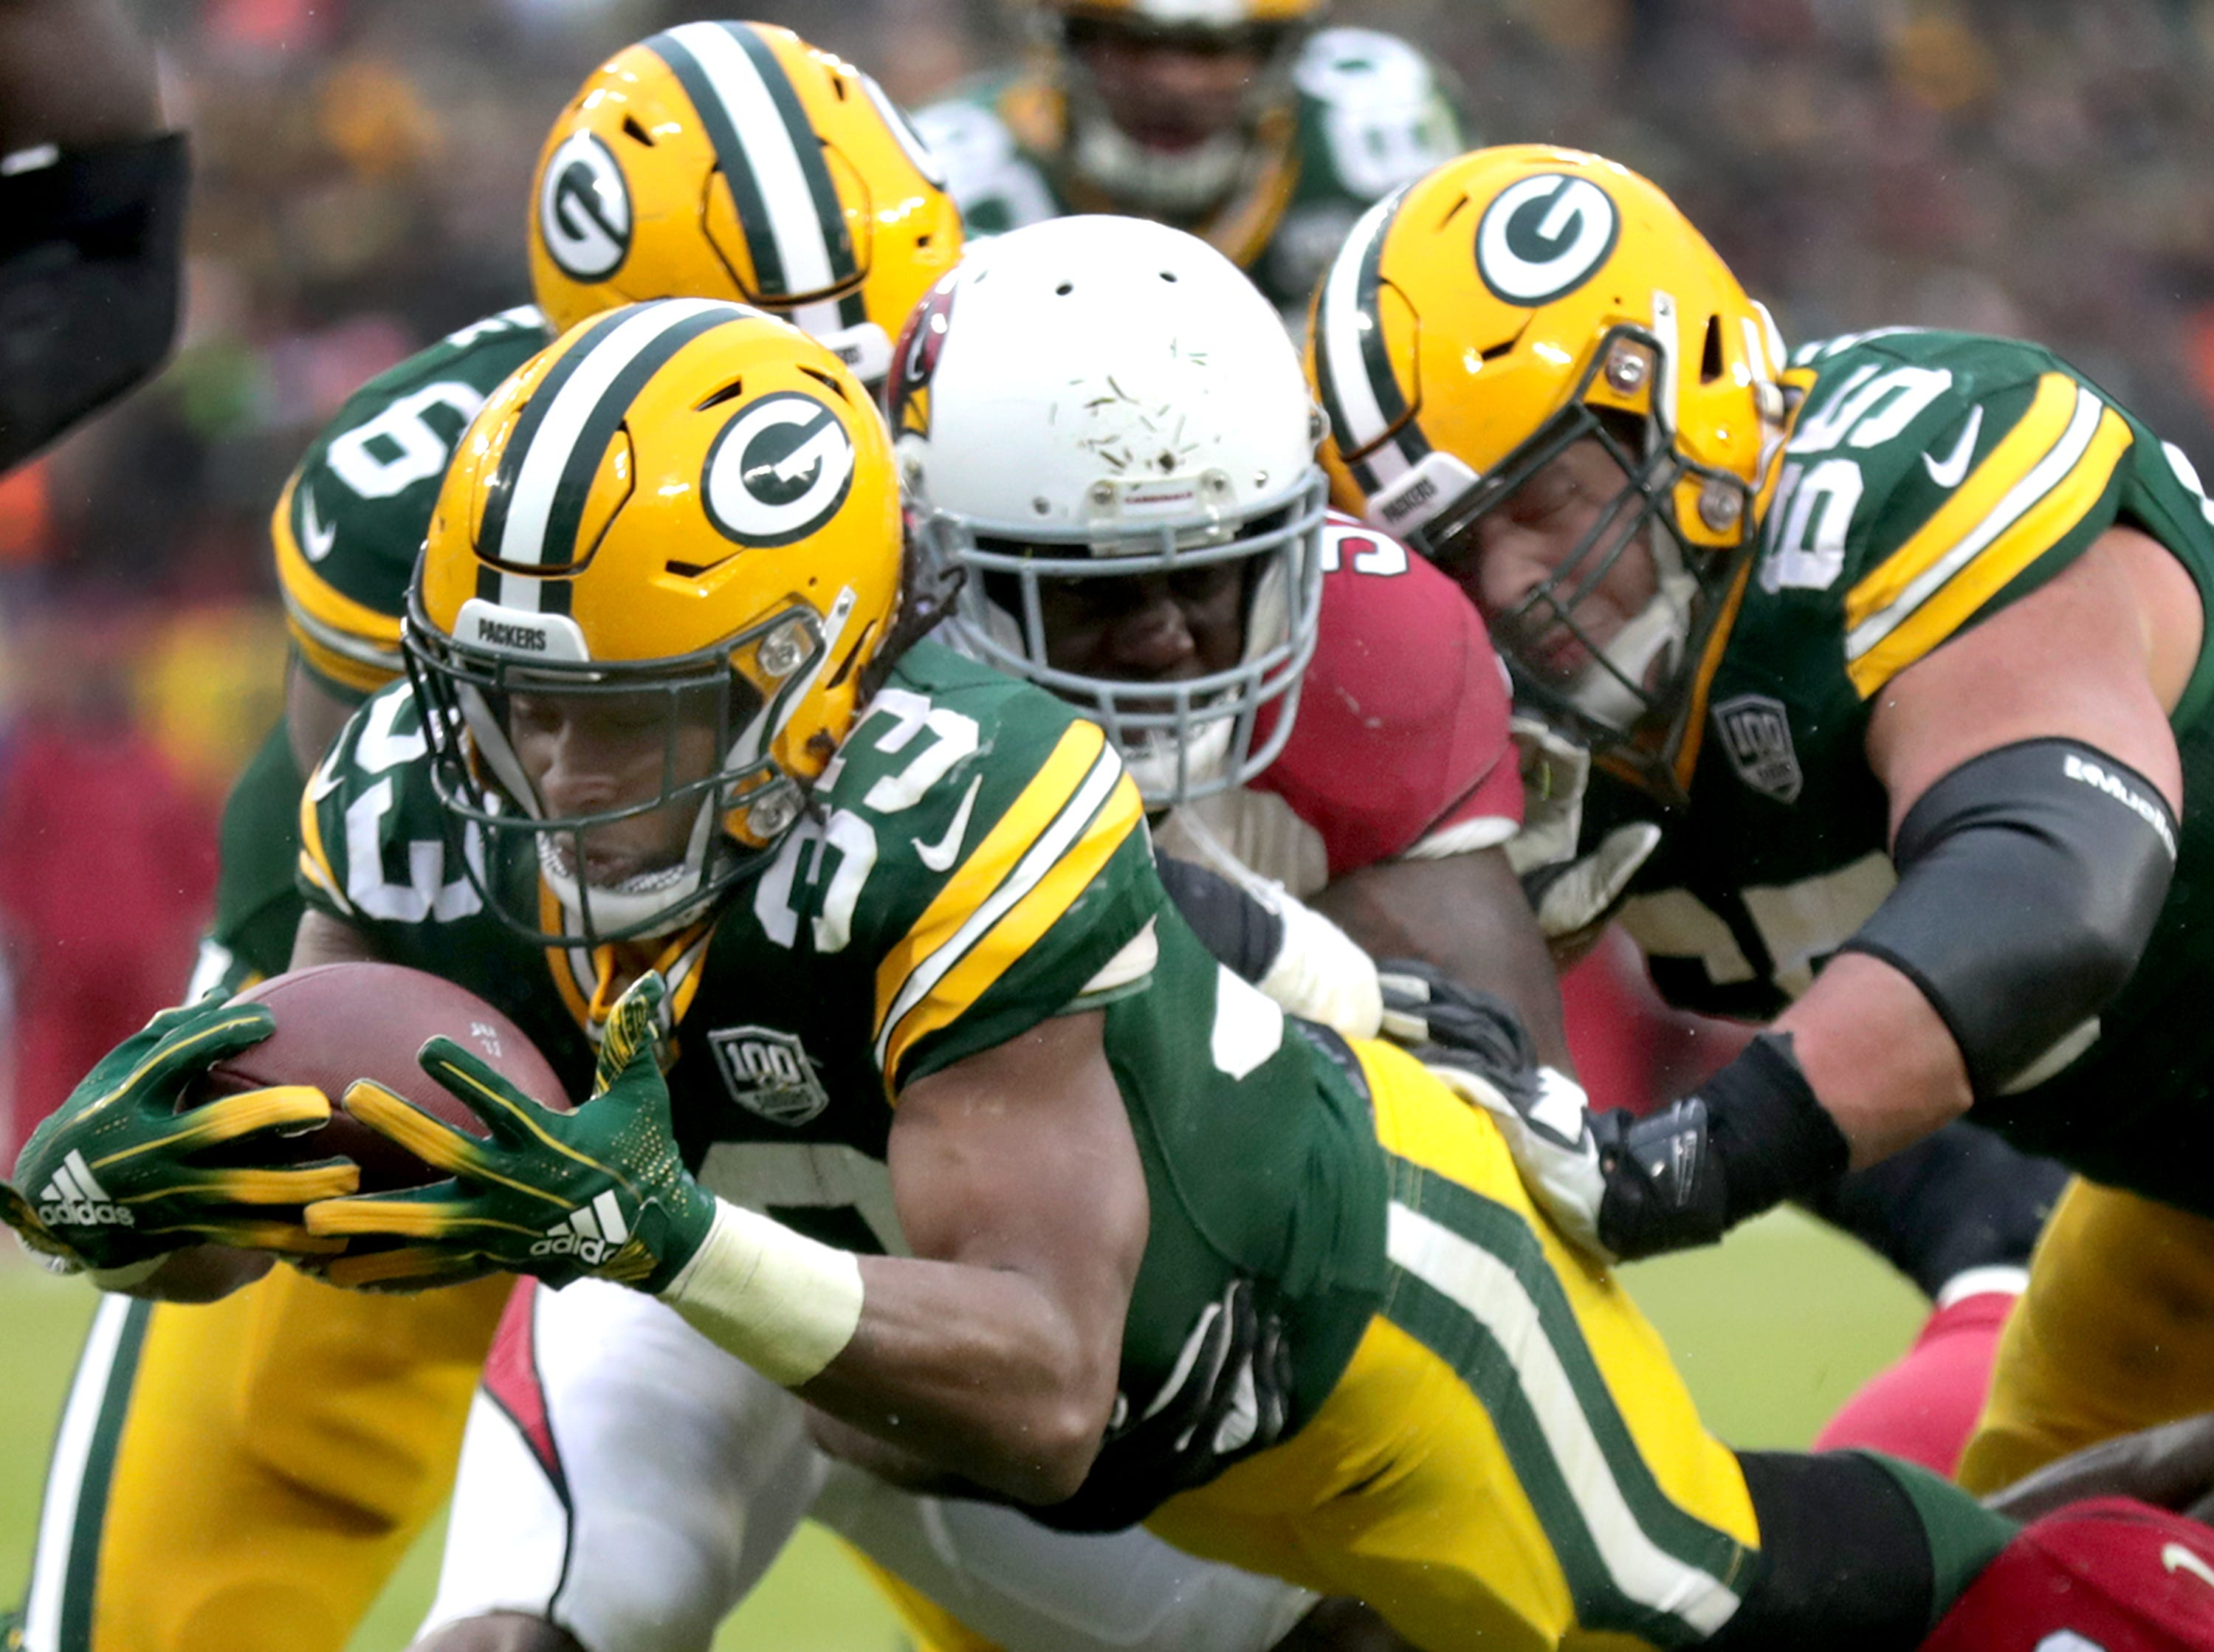 Green Bay Packers running back Aaron Jones rushes for a late fourth quarter touchdown, evening the score up at 17 each, against the Arizona Cardinals during their football game on Sunday, December 2, 2018, at Lambeau Field in Green Bay, Wis. Arizona defeated Green Bay 20 to 17.